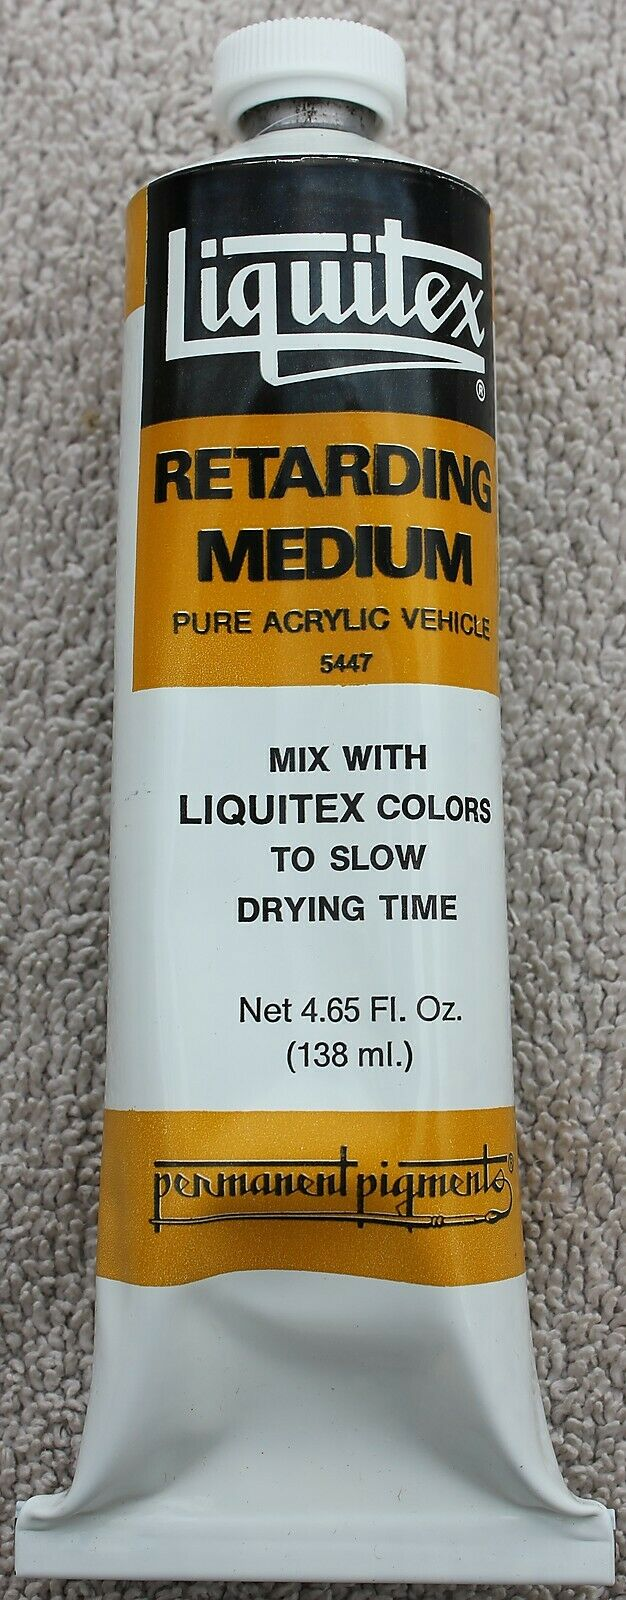 Nos Liquitex Retarding Medium Pure Acrylic Vehicle Large Tube 4 65 Fl Oz No 5447 For Sale Online Ebay